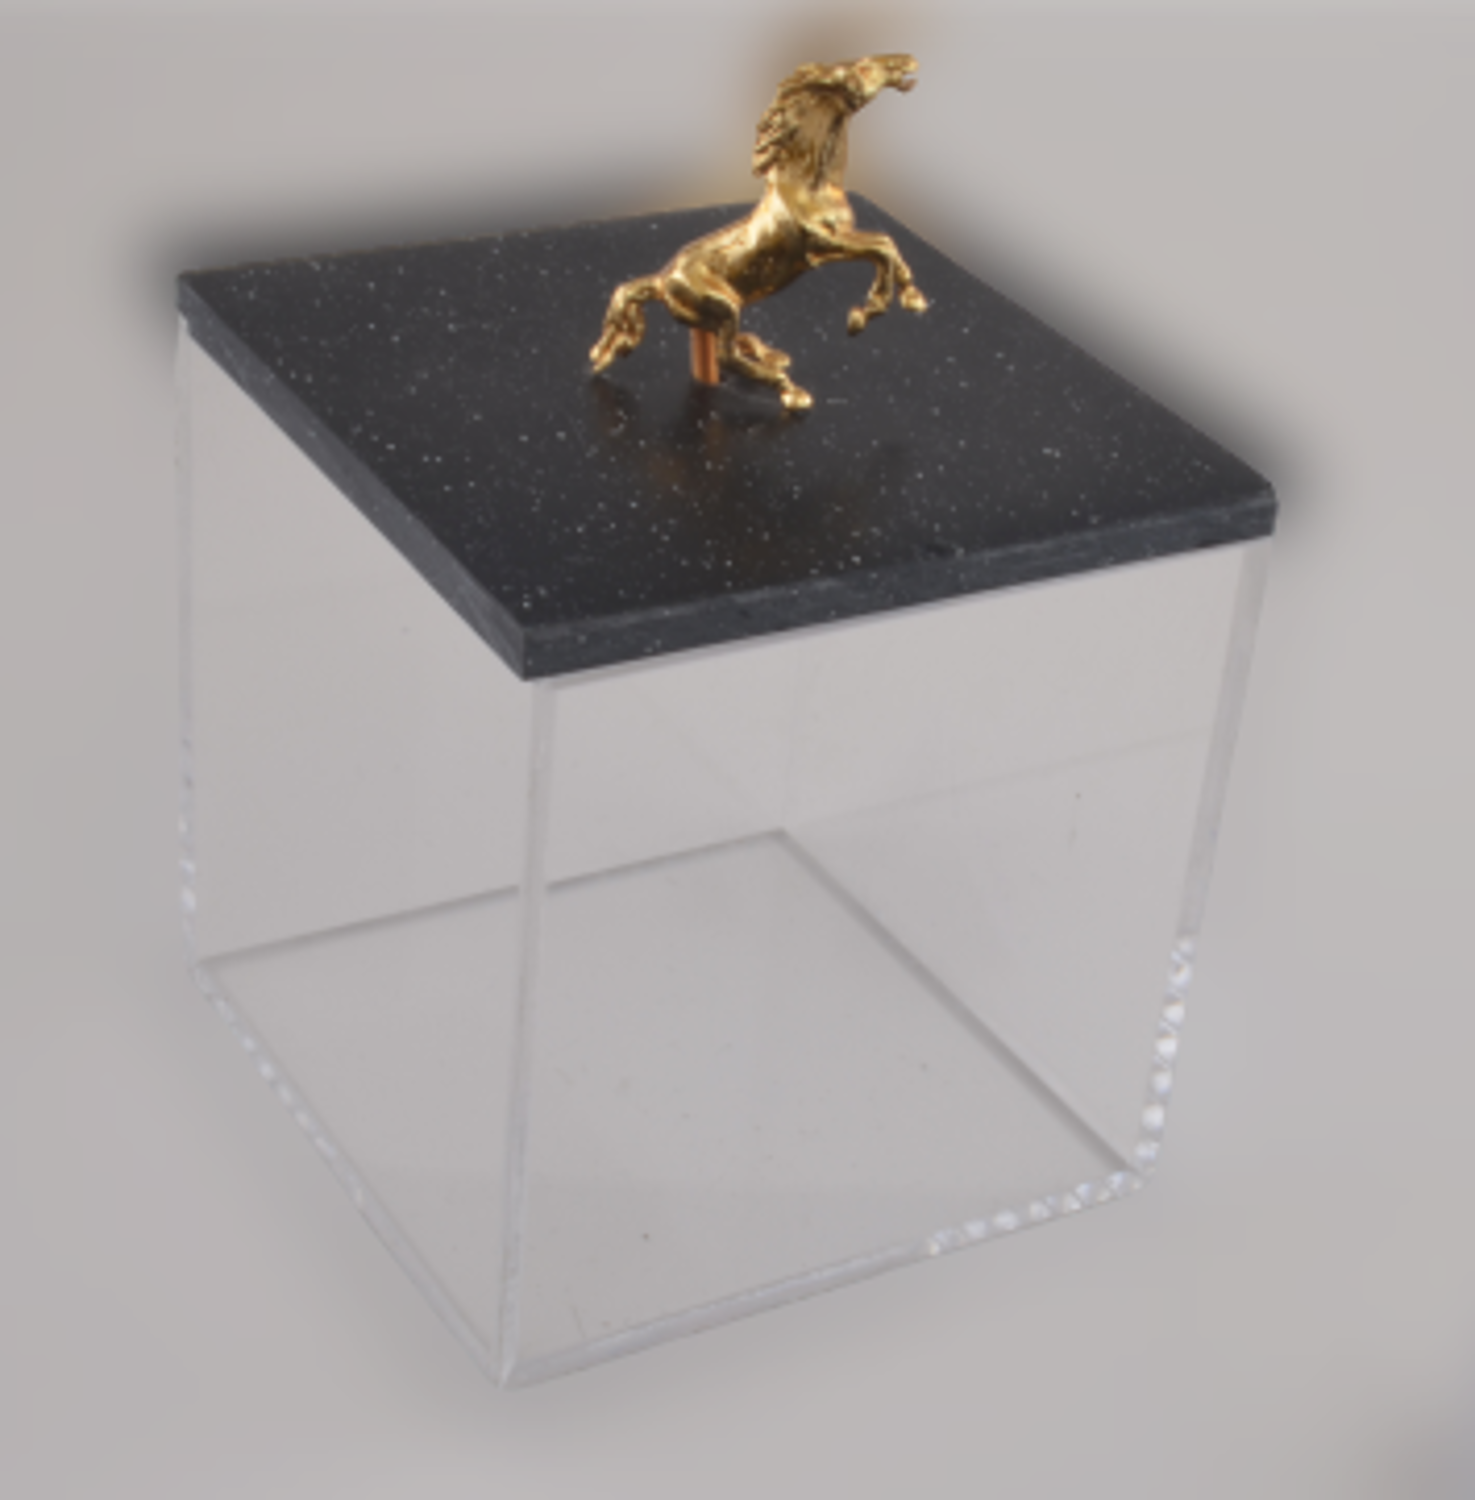 MEVLANA STORAGE CONTAINER FLEXI WITH BLACK MARBLE HORSE resmi